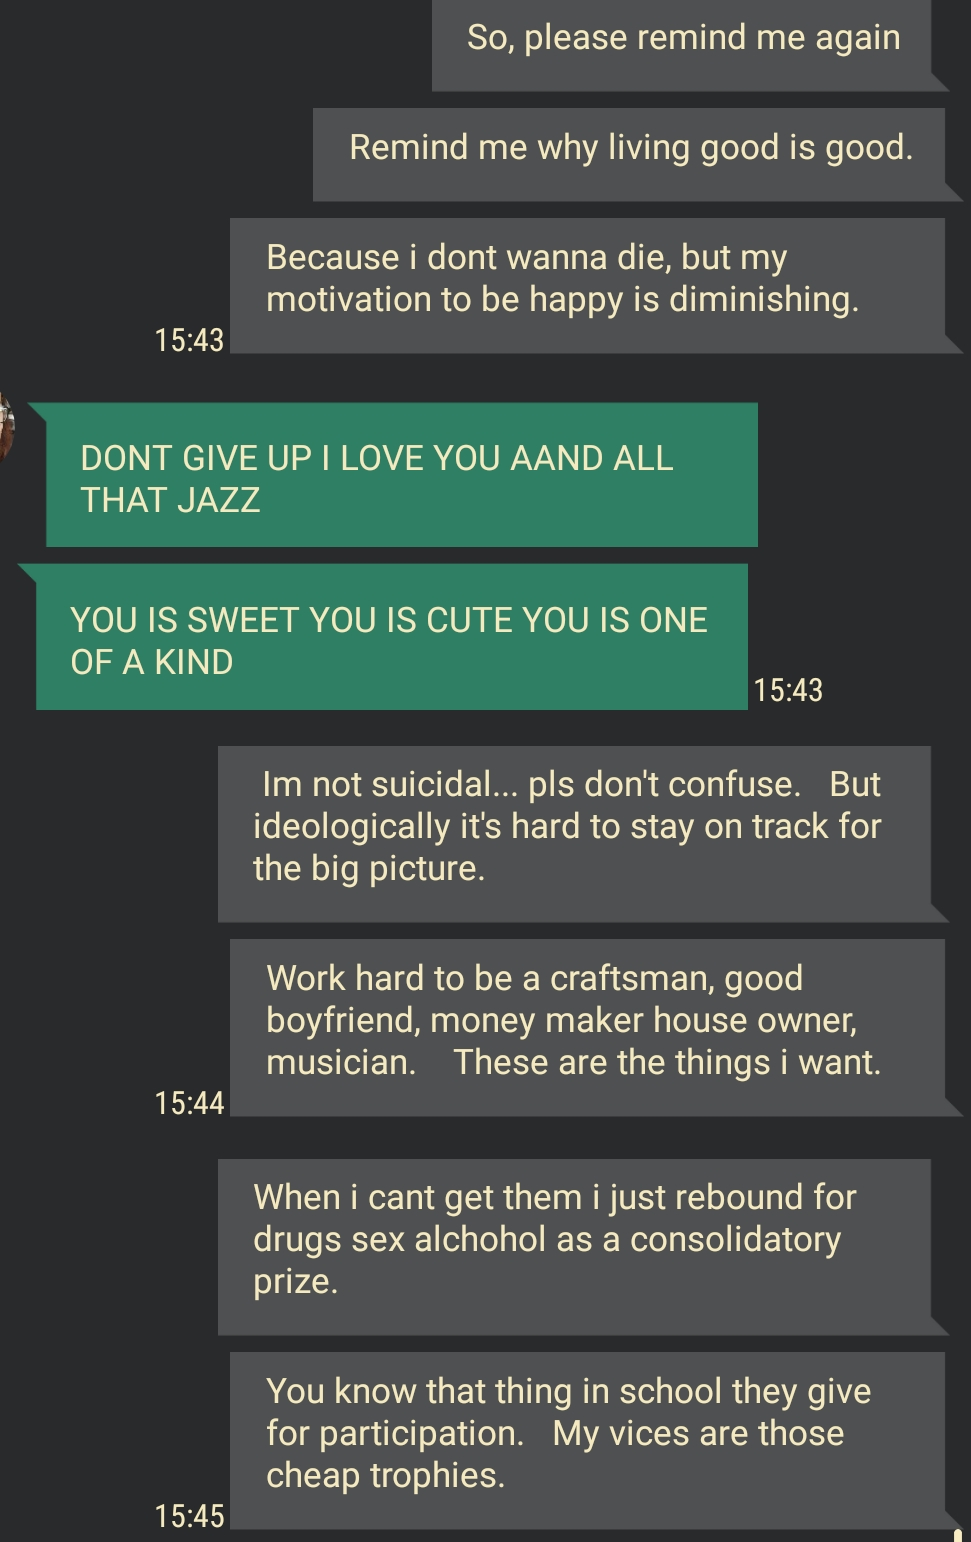 [Image] I sent this to my girlfriend because i am having a mini existential crisis. It kinda worked itself out and i wanted to share and discuss.